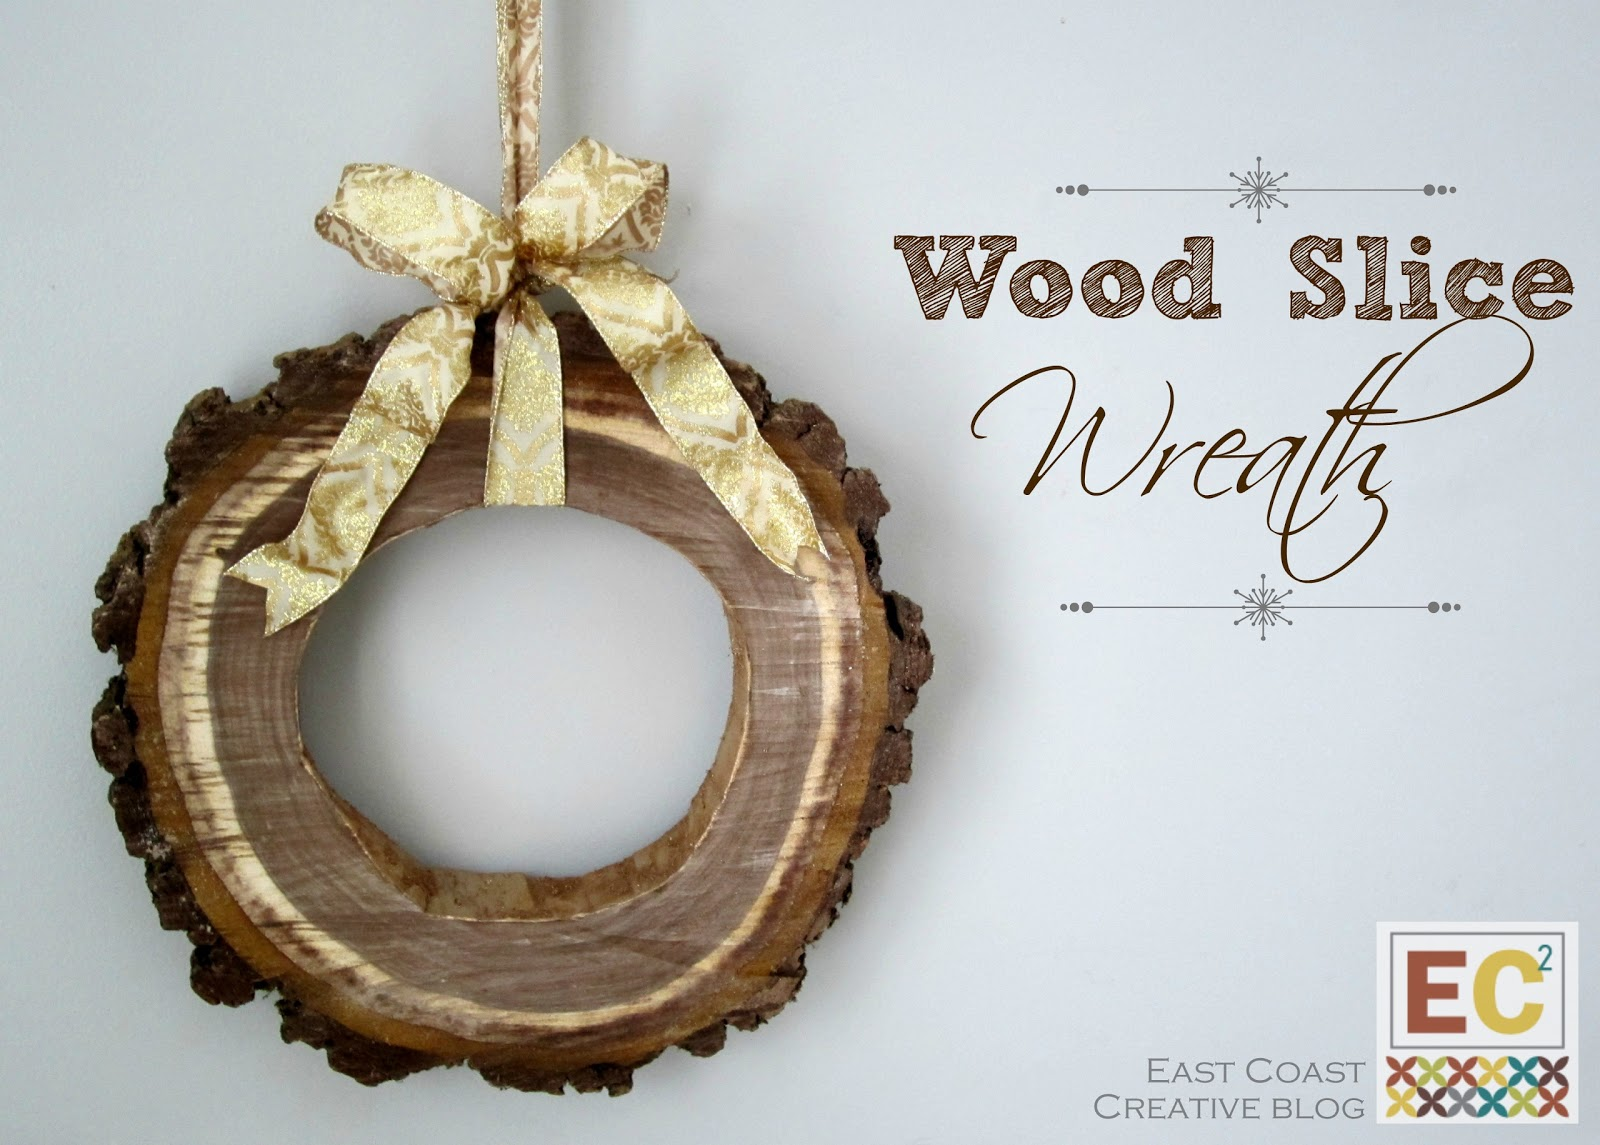 Homemade Wooden Home Decor: 25 Handmade Christmas Decorations